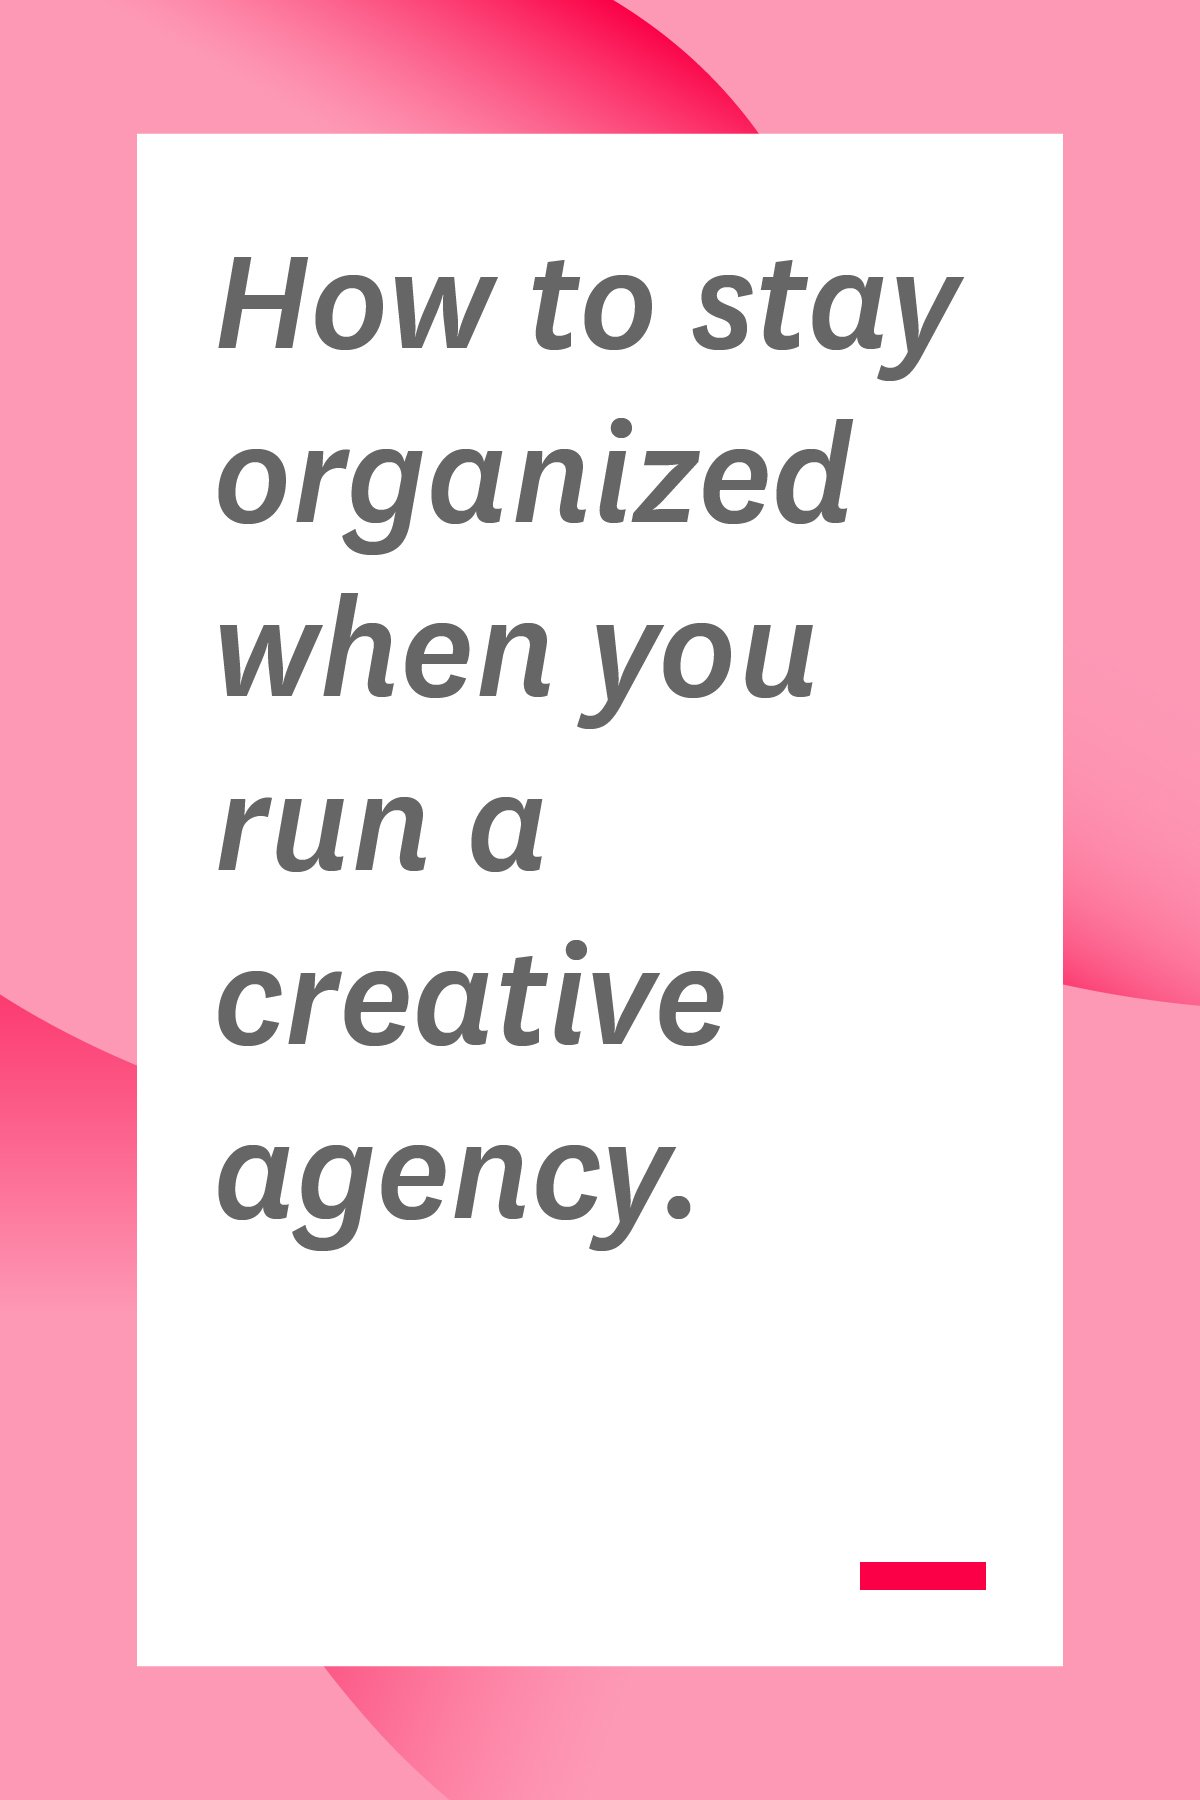 If you own or manage a creative agency, these tips and tools will help you get organized and stay organized. #creativeagency #managertips